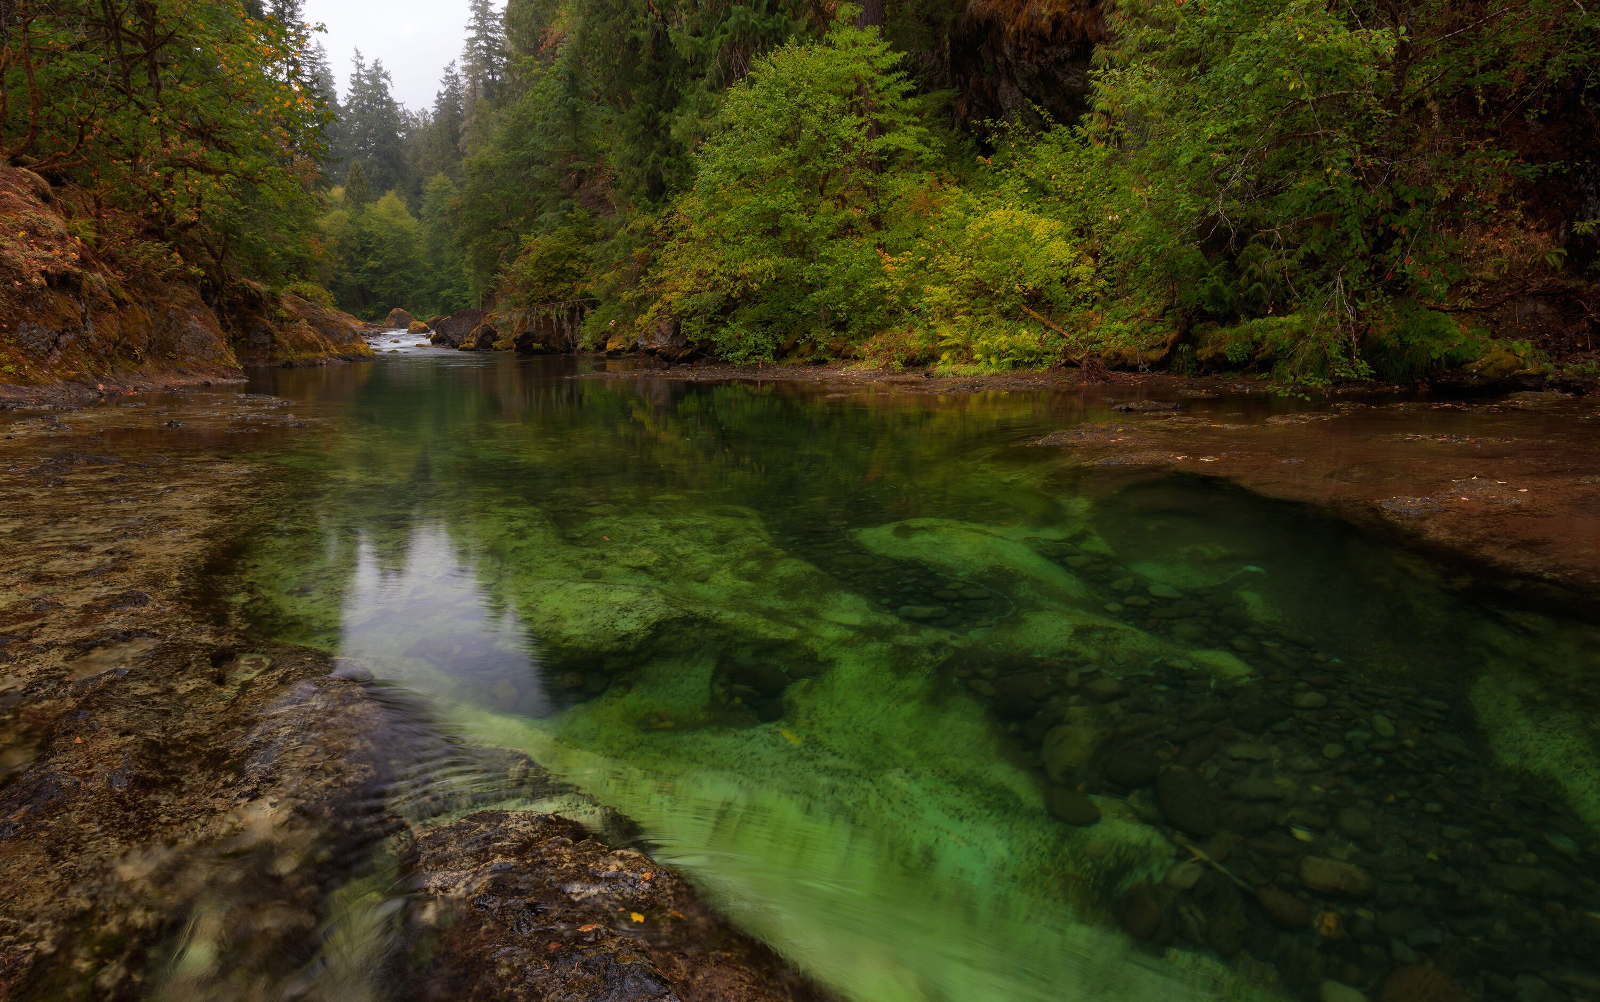 Saving Oregon's Famed Rivers and Wild Salmon from Gold Mining